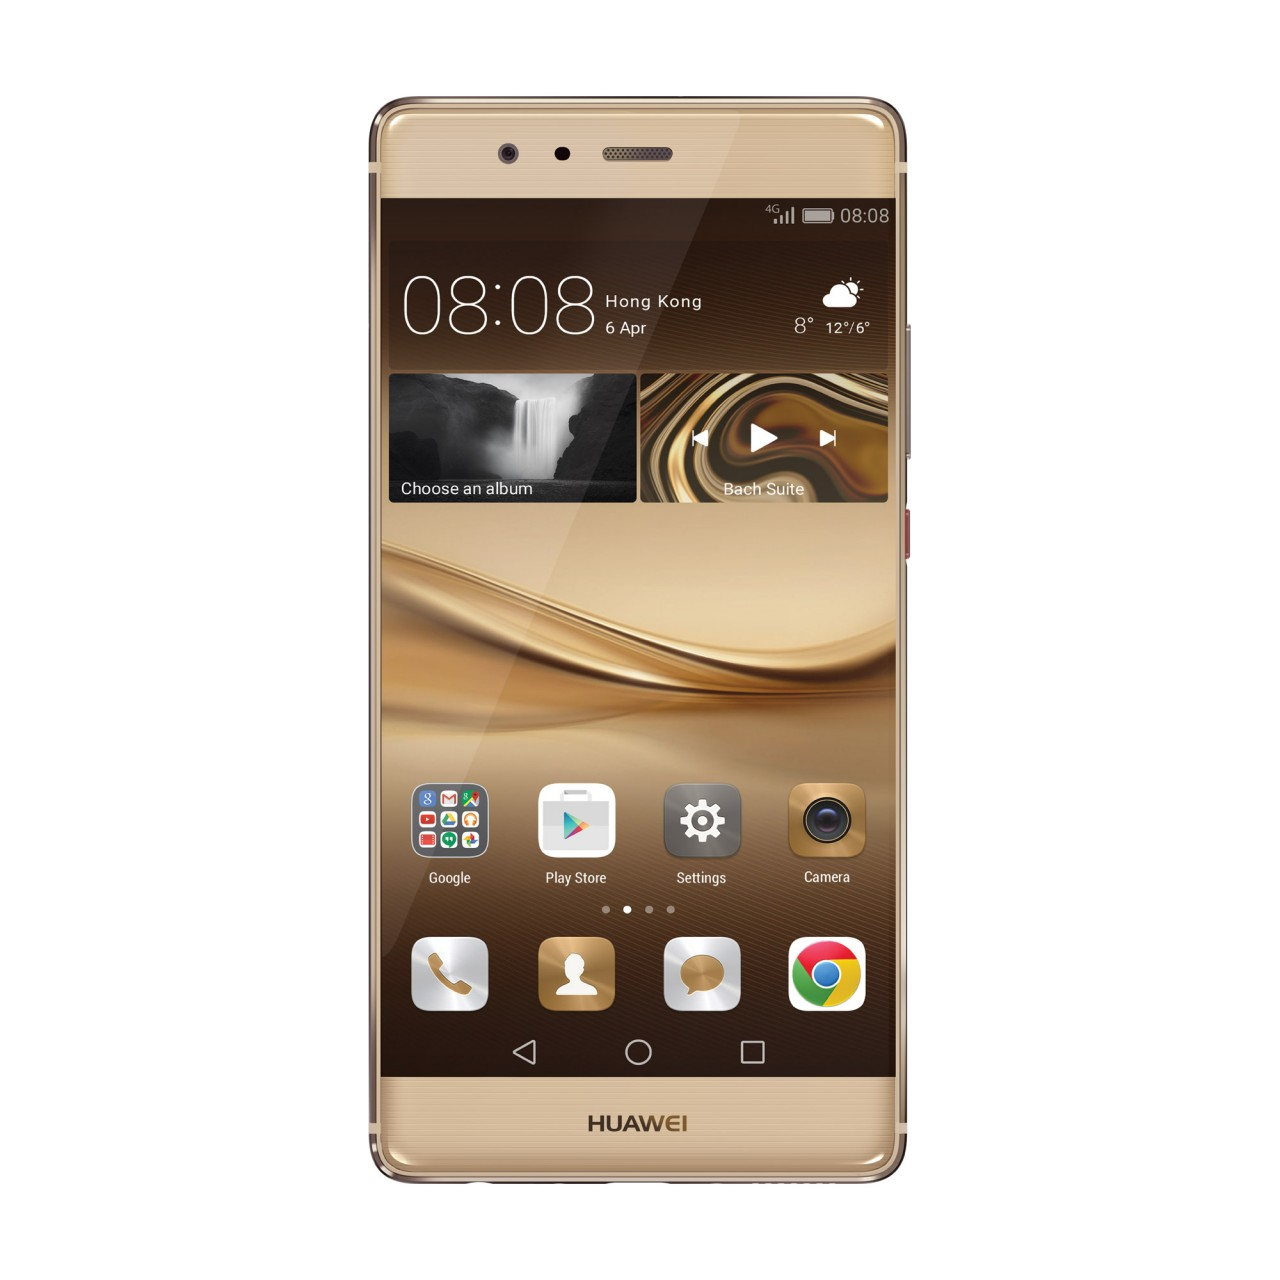 huawei p9 plus gold price in pakistan home shopping. Black Bedroom Furniture Sets. Home Design Ideas